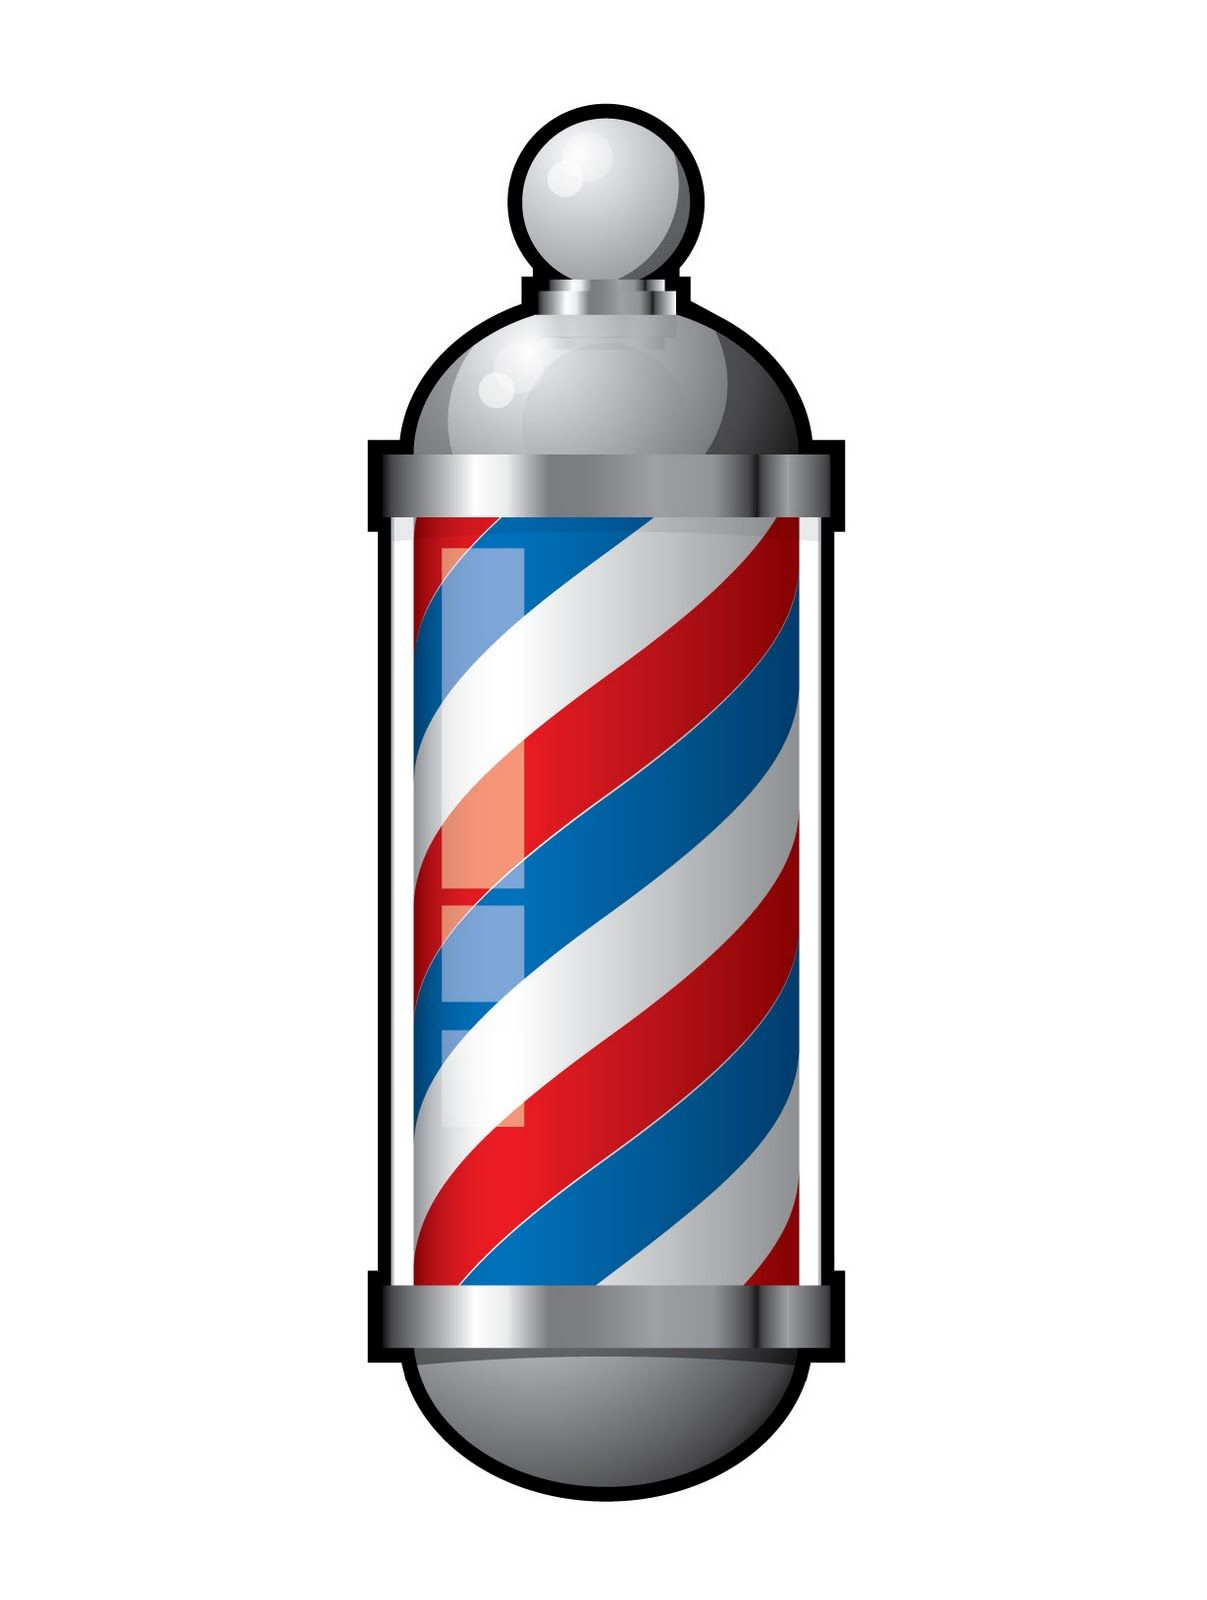 barber shop png transparent barber shop png images pluspng Barber Pole Clip Art Tools Copyright Free Images of Barber Shop Poles Clip Art